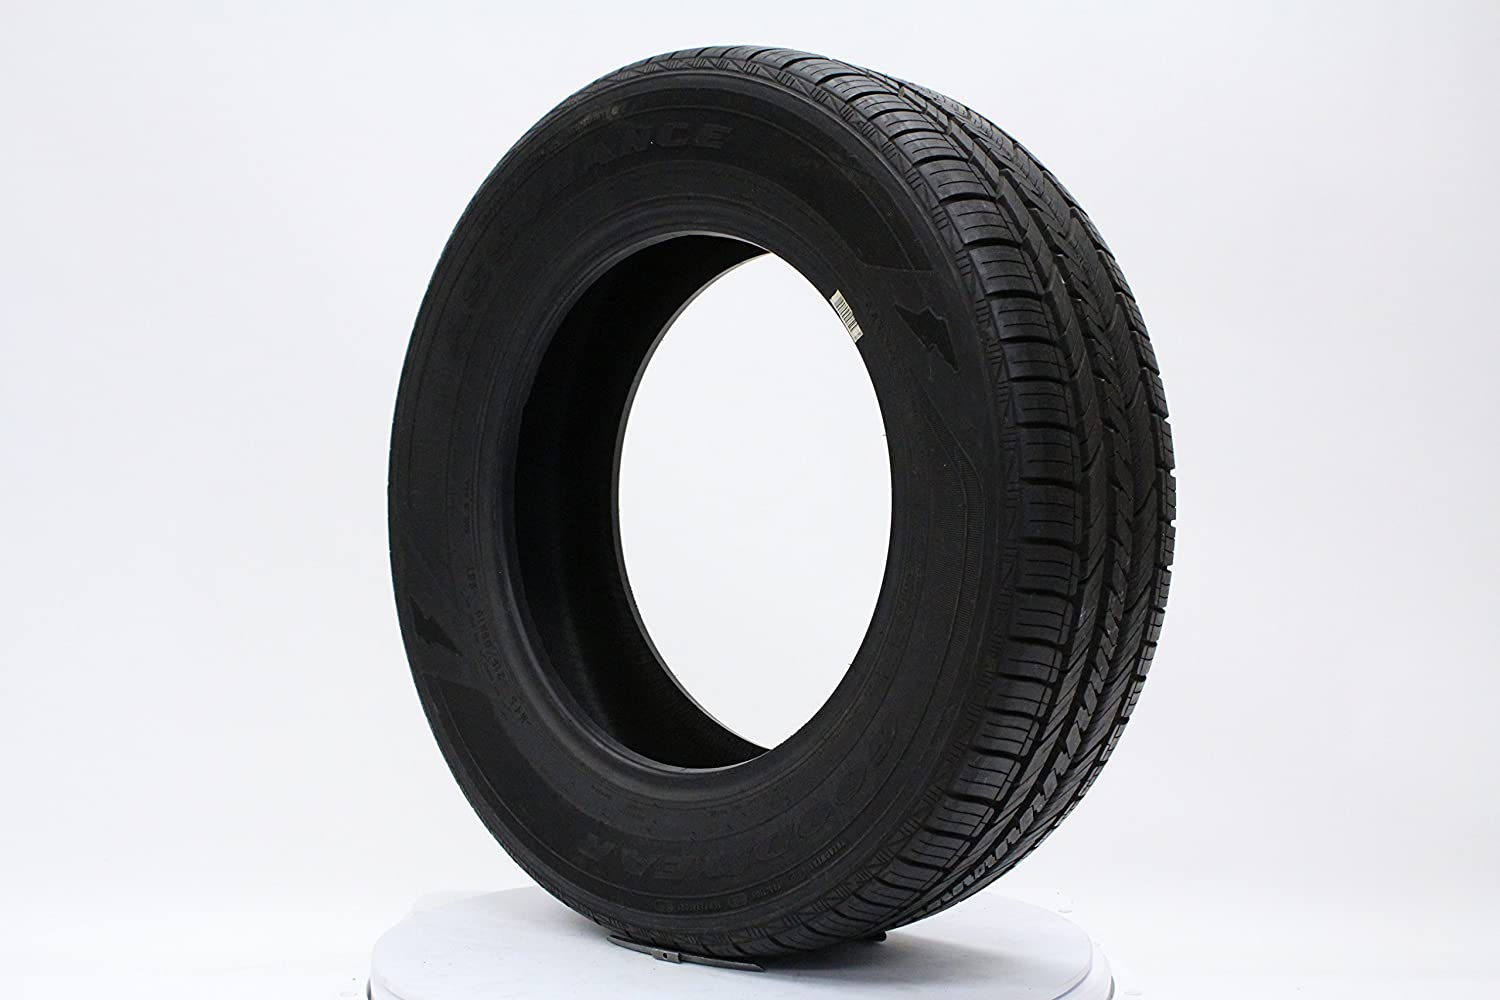 Goodyear Assurance Fuel Max Radial - P195/65R15 89H 738274571